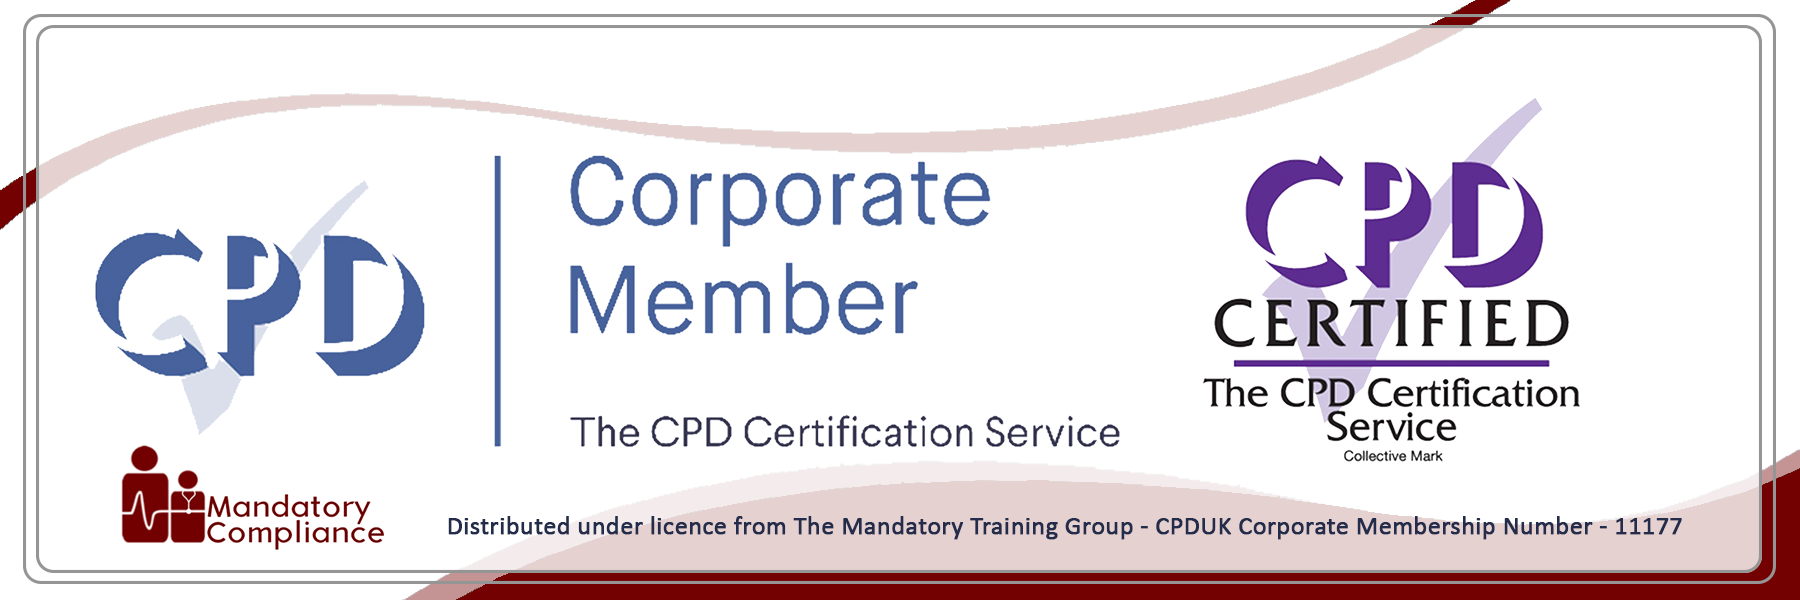 Coaching and Mentoring - Online Training Course - CPDUK Accredited - Mandatory Compliance UK -